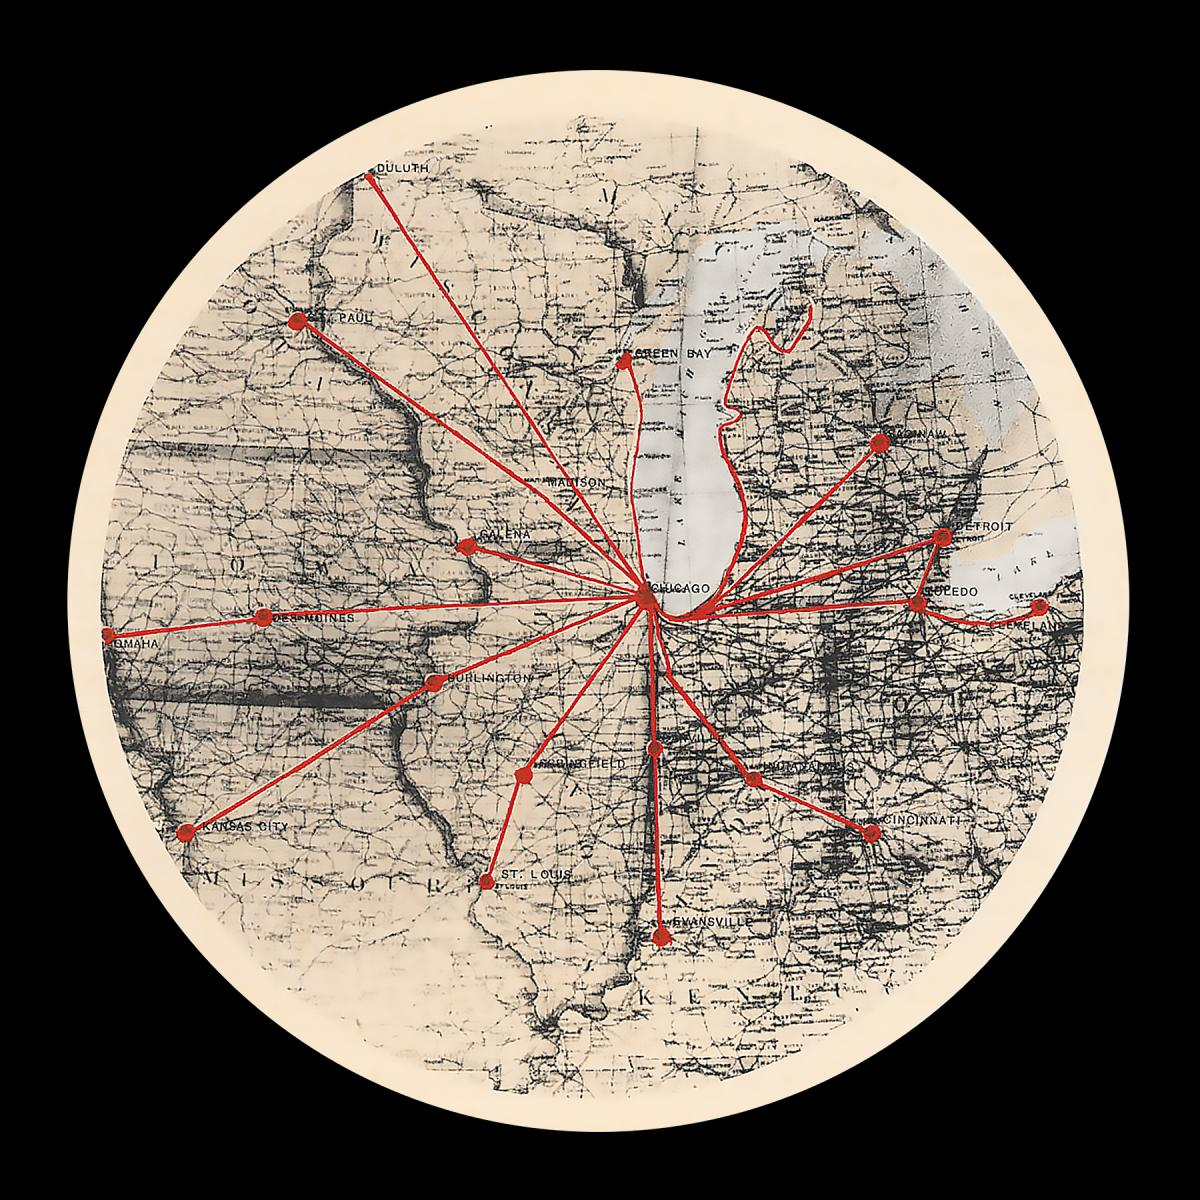 Circular diagram which shows Chicago's reach into the surrounding areas